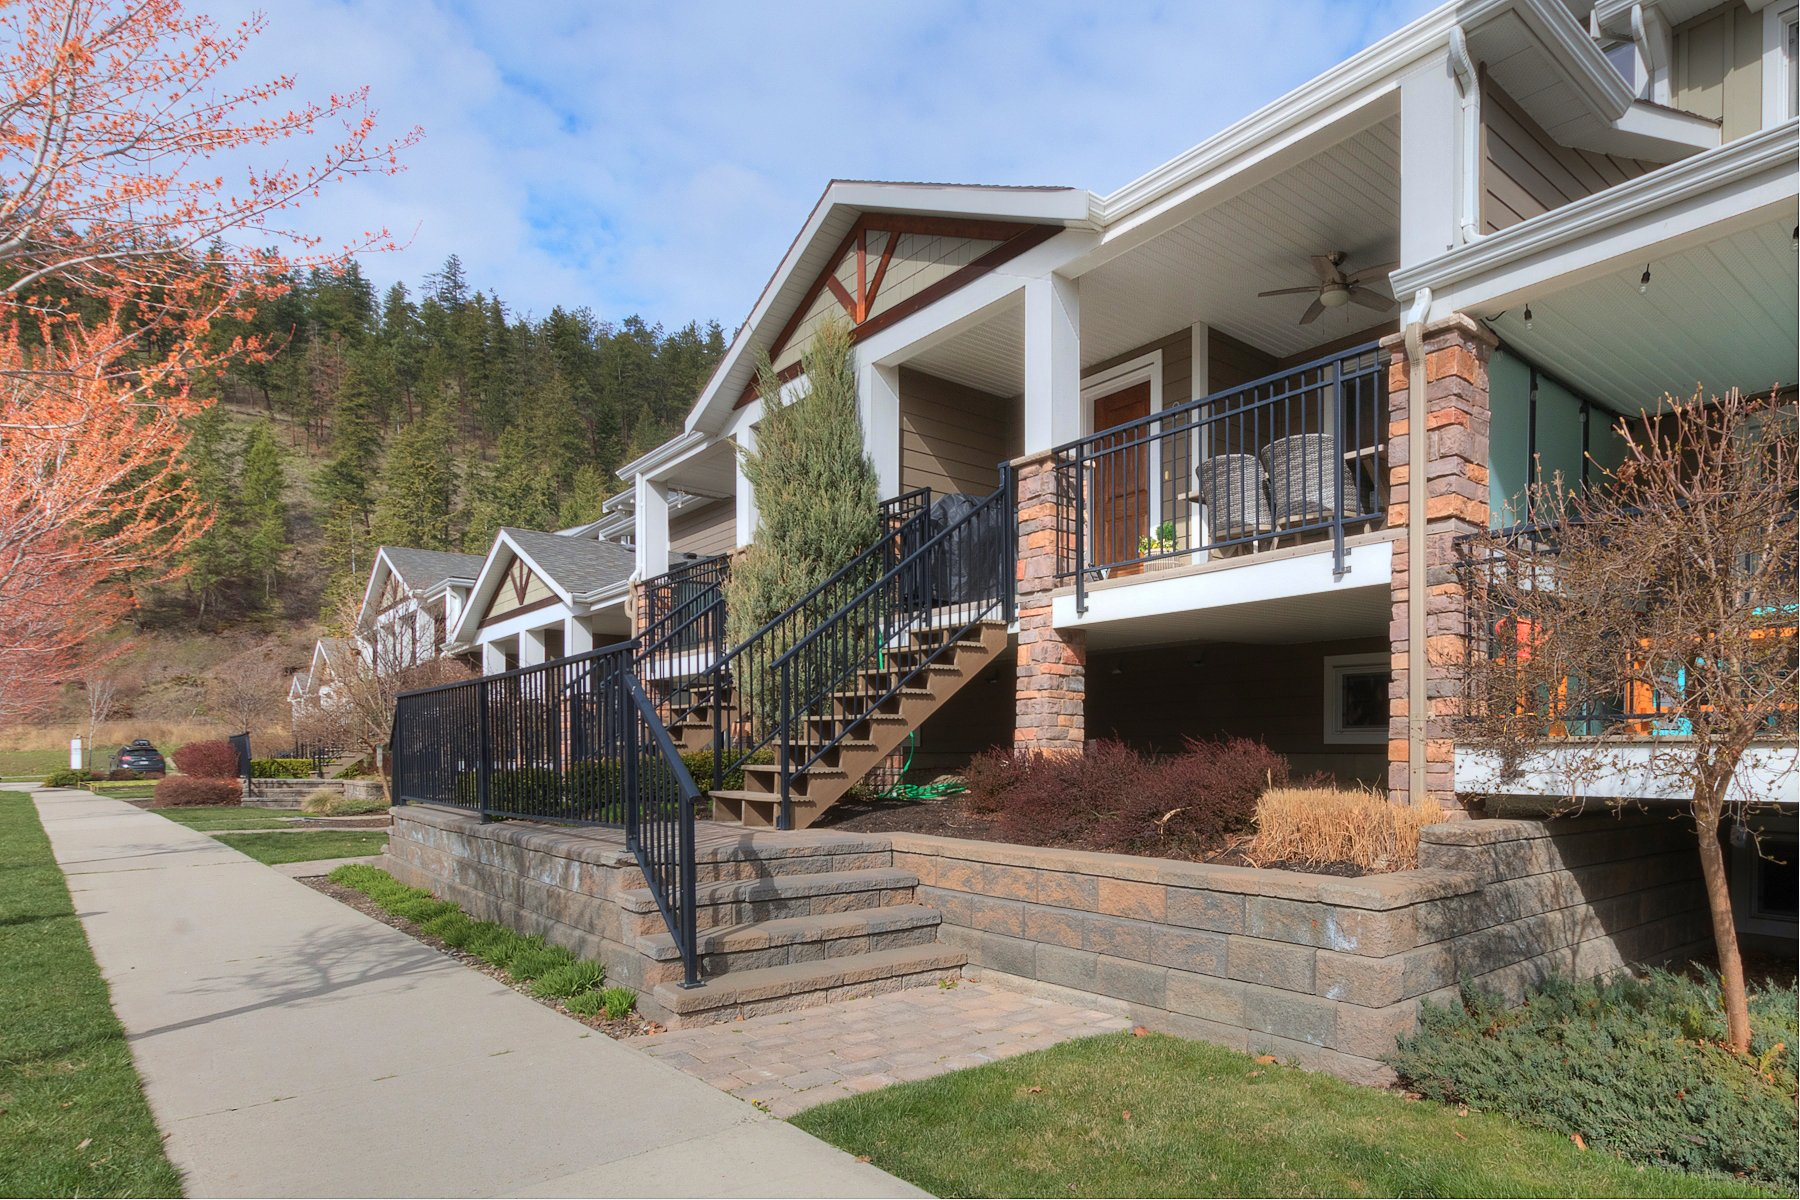 Main Photo: 9 600 Boynton Place in Kelowna: Glenmore House for sale (Central Okanagan)  : MLS®# 10180250